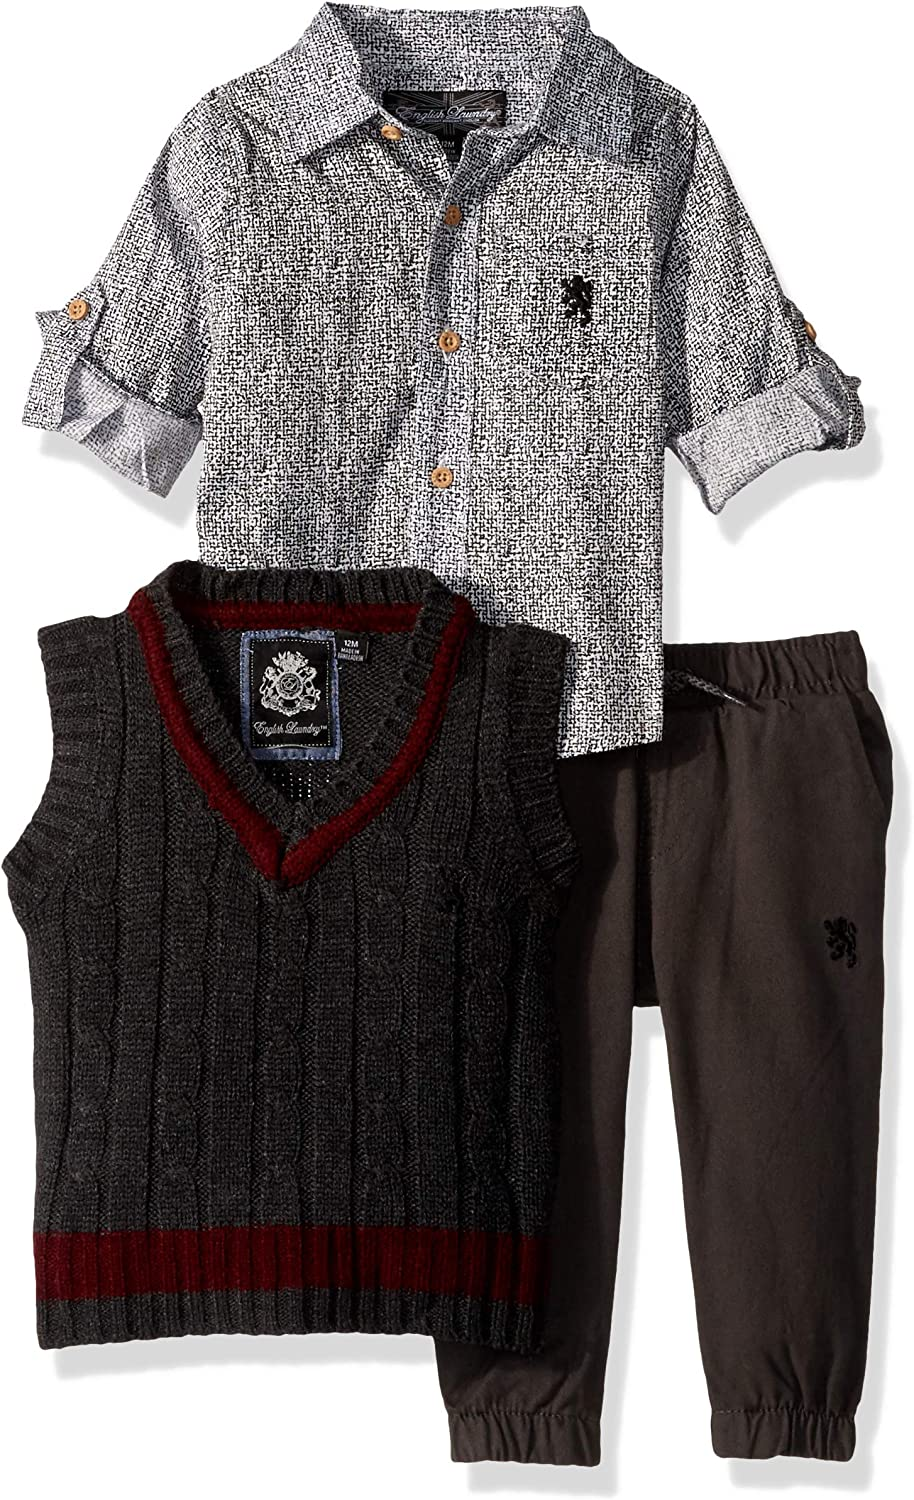 English Laundry Baby Boys Long Sleeve Woven Shirt, Vest, and Pant Set